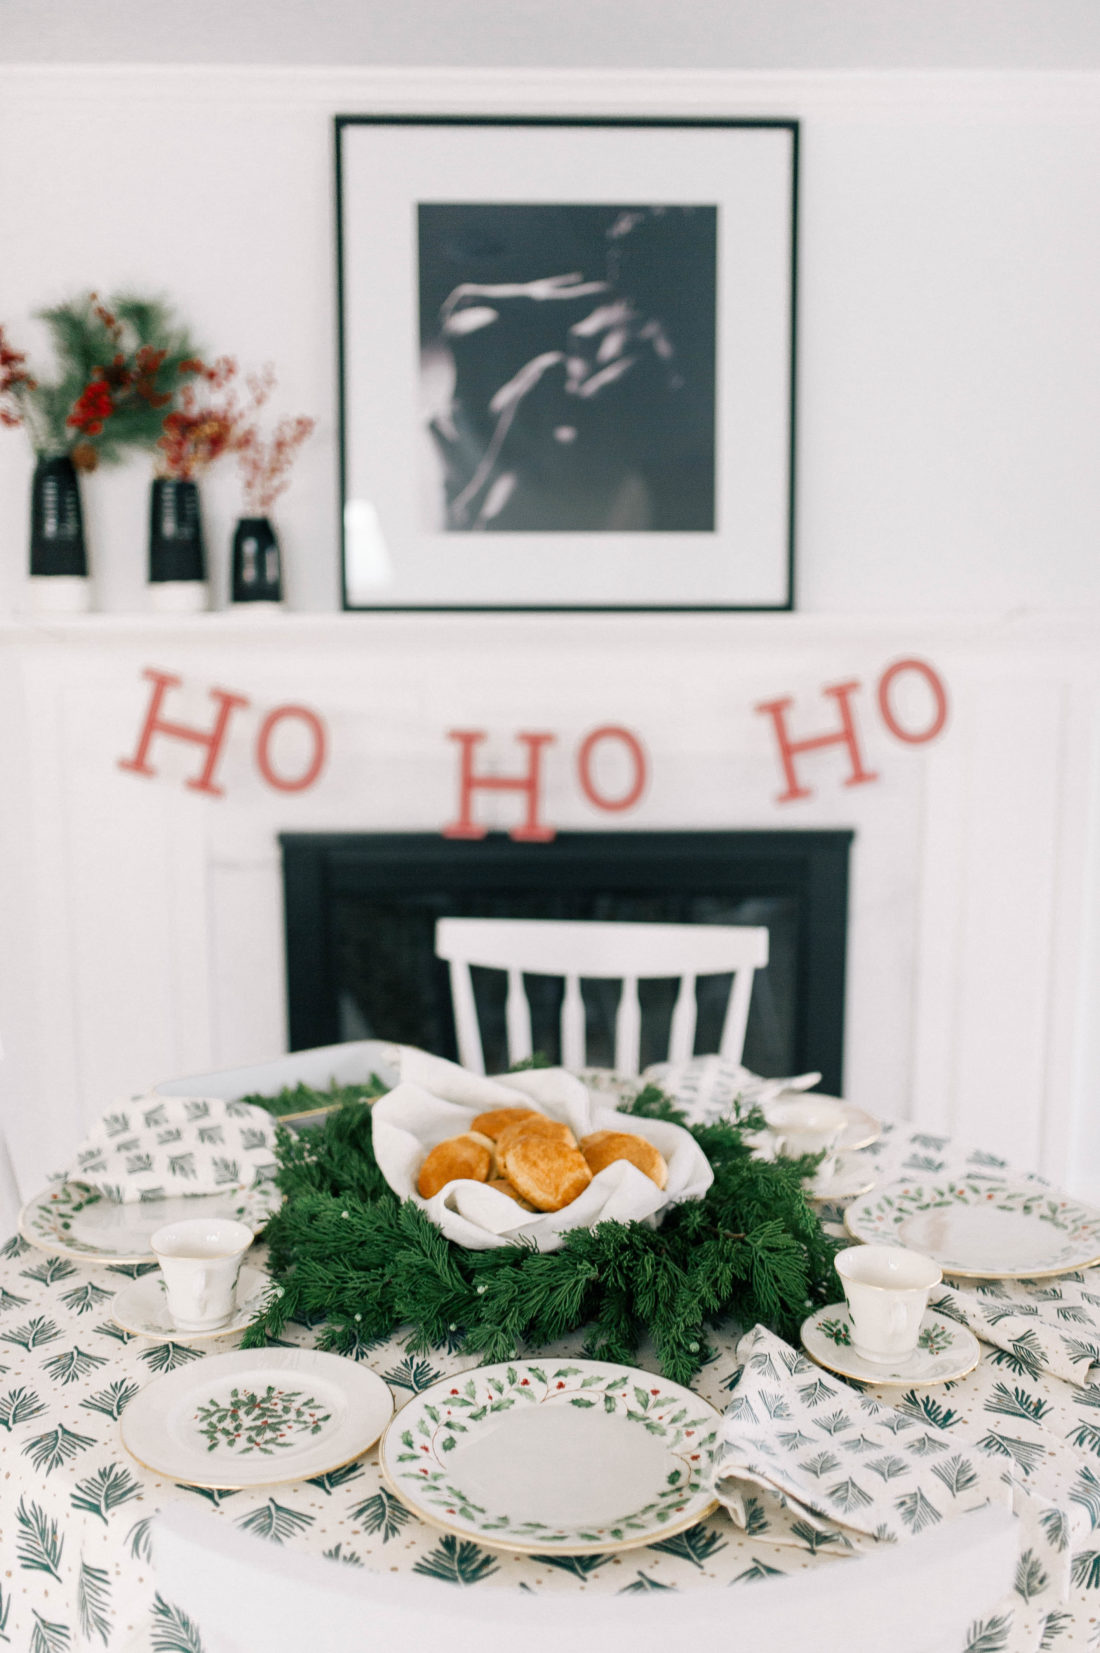 Eva Amurri Martino has a festive brunch in her kitchen on Christmas Day